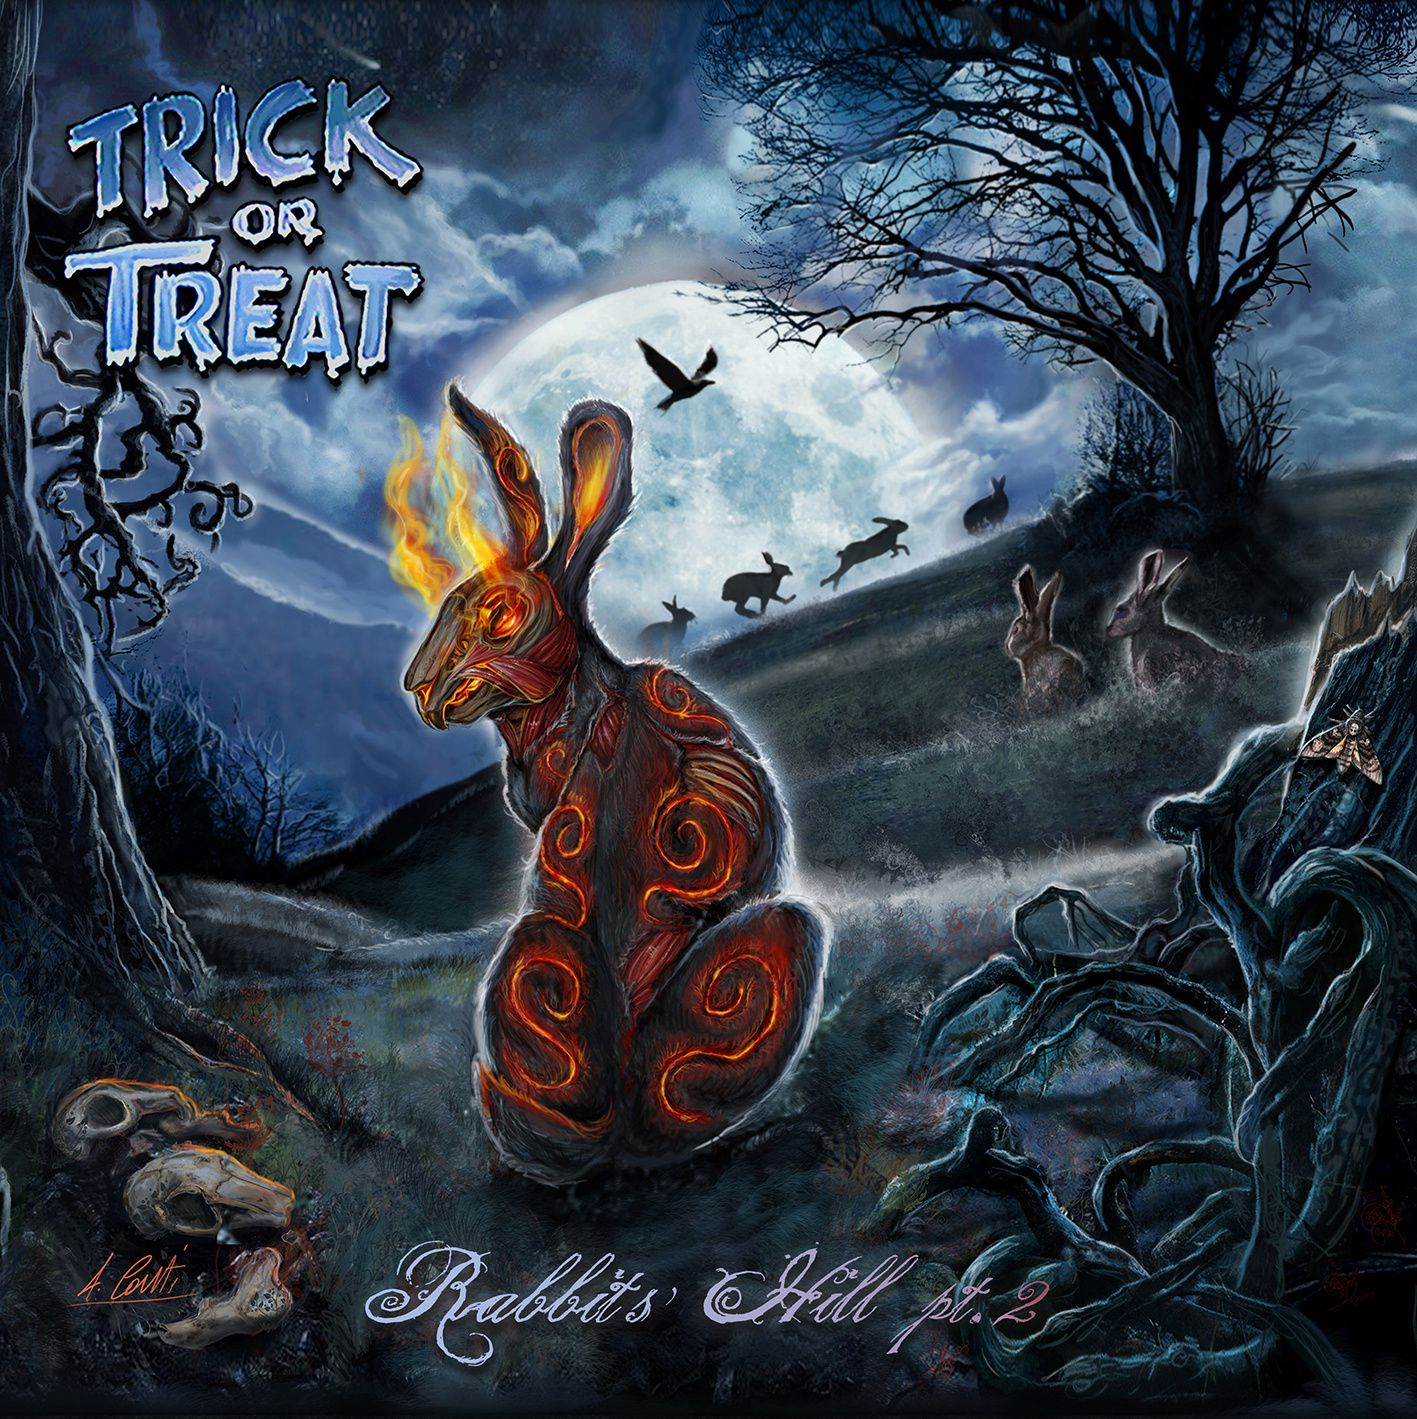 CD review TRICK OR TREAT &quot&#x3B;Rabbits' Hill pt.2&quot&#x3B;